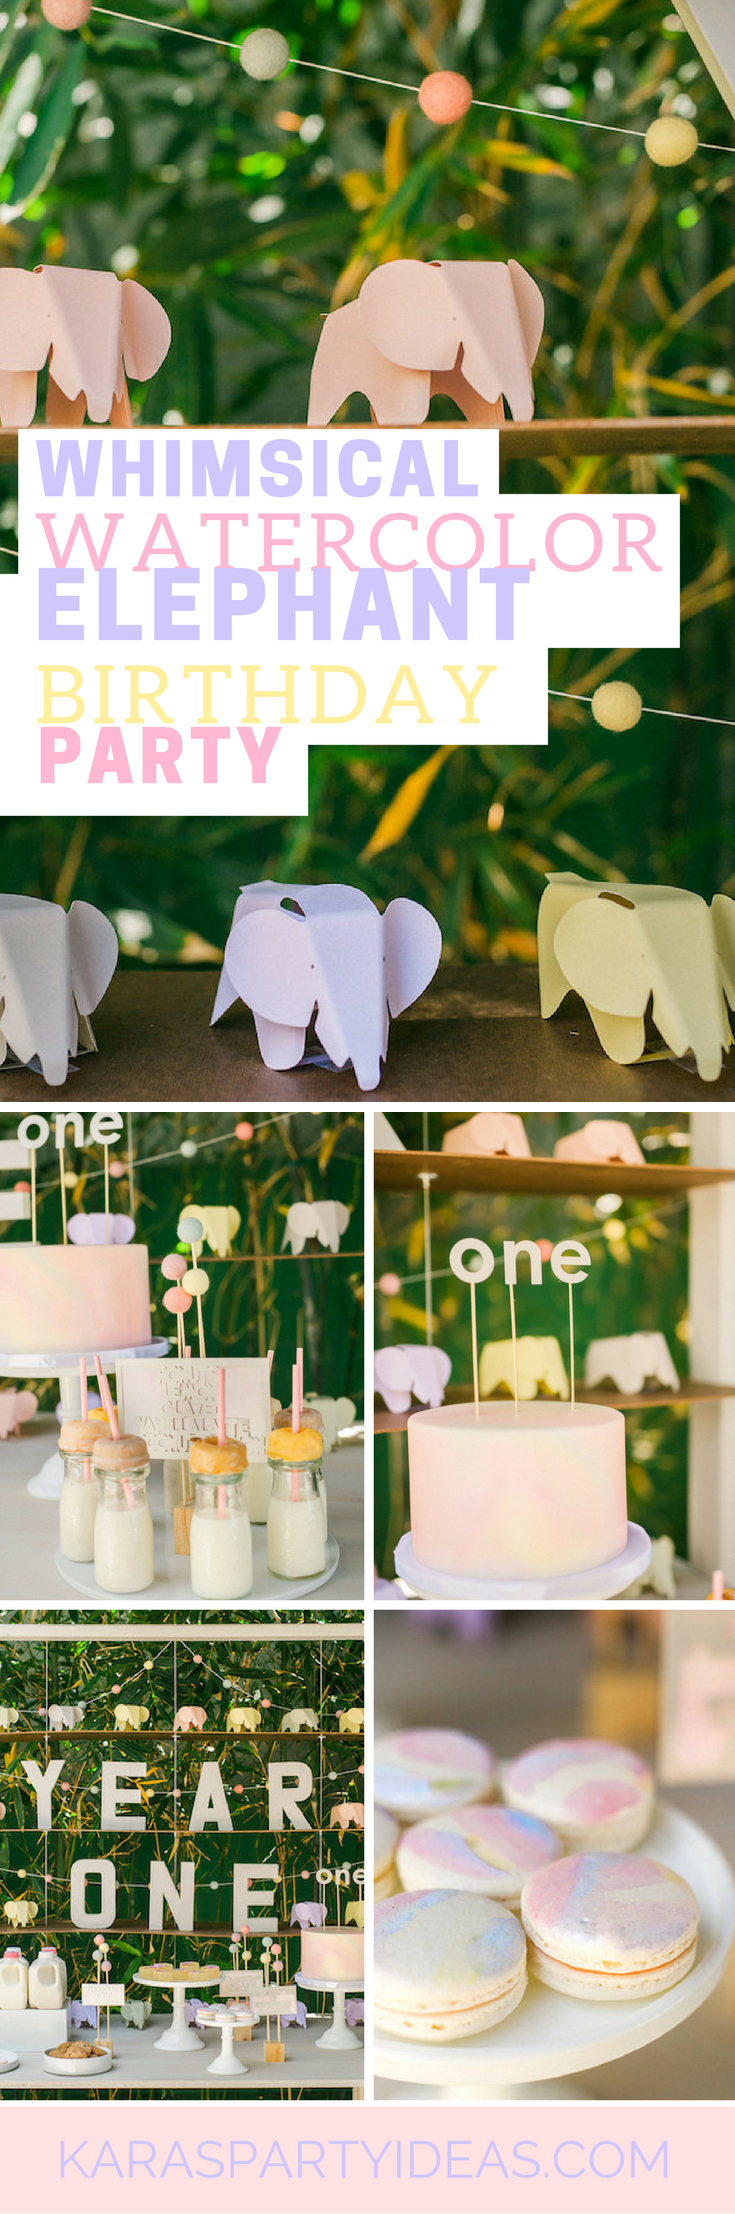 Whimsical Watercolor Elephant Birthday Party via Kara's Party Ideas - KarasPartyIdeas.com